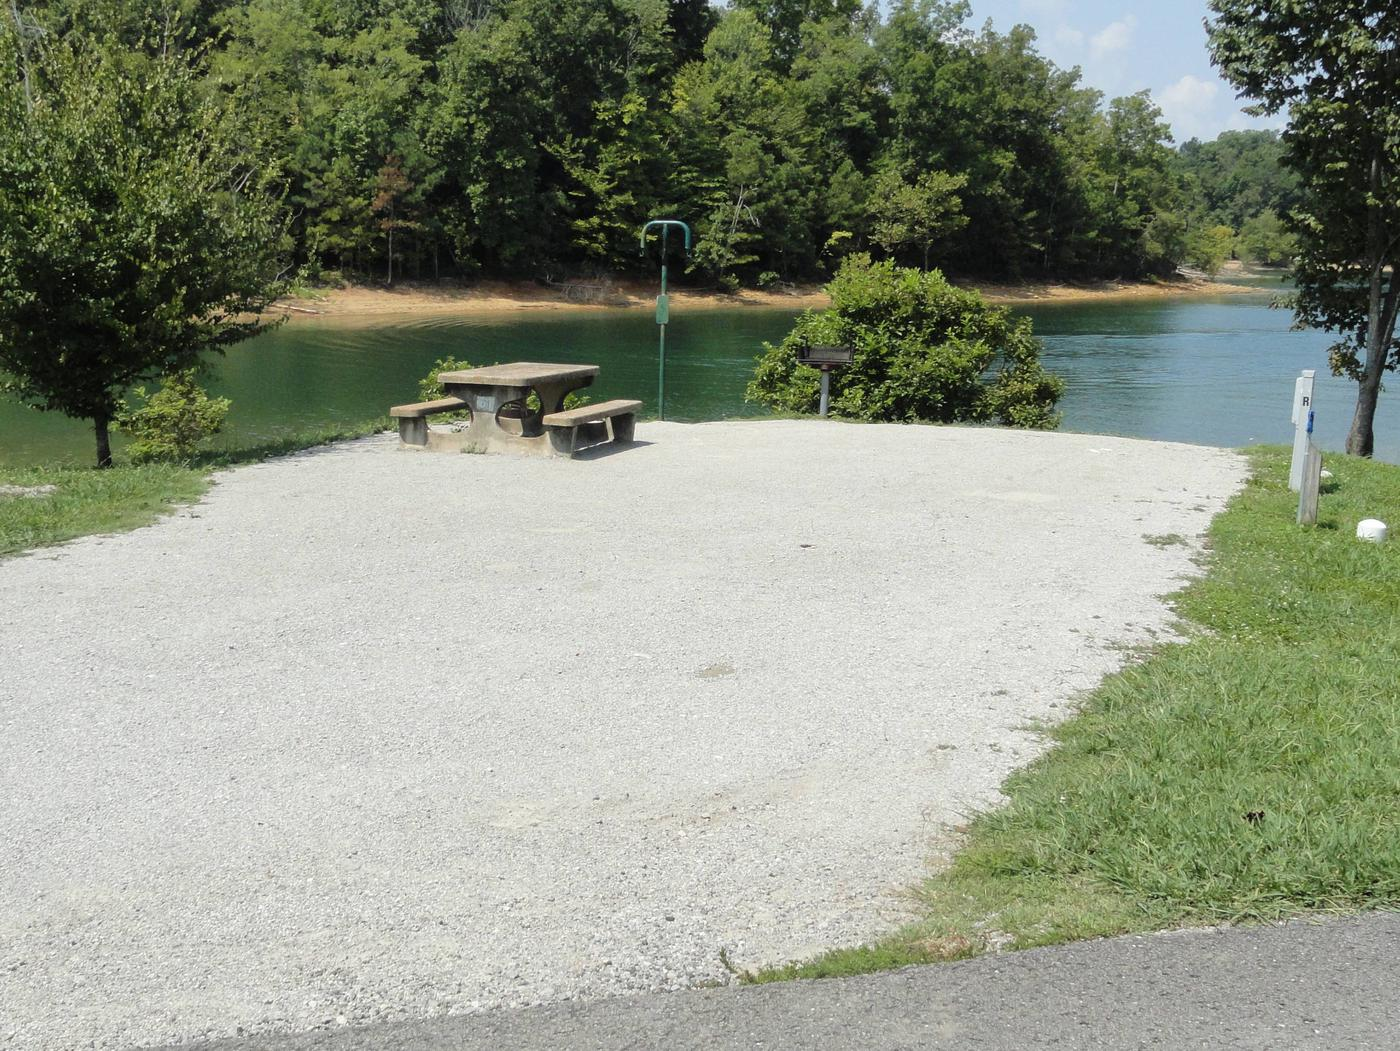 LILLYDALE CAMPGROUND SITE # 61